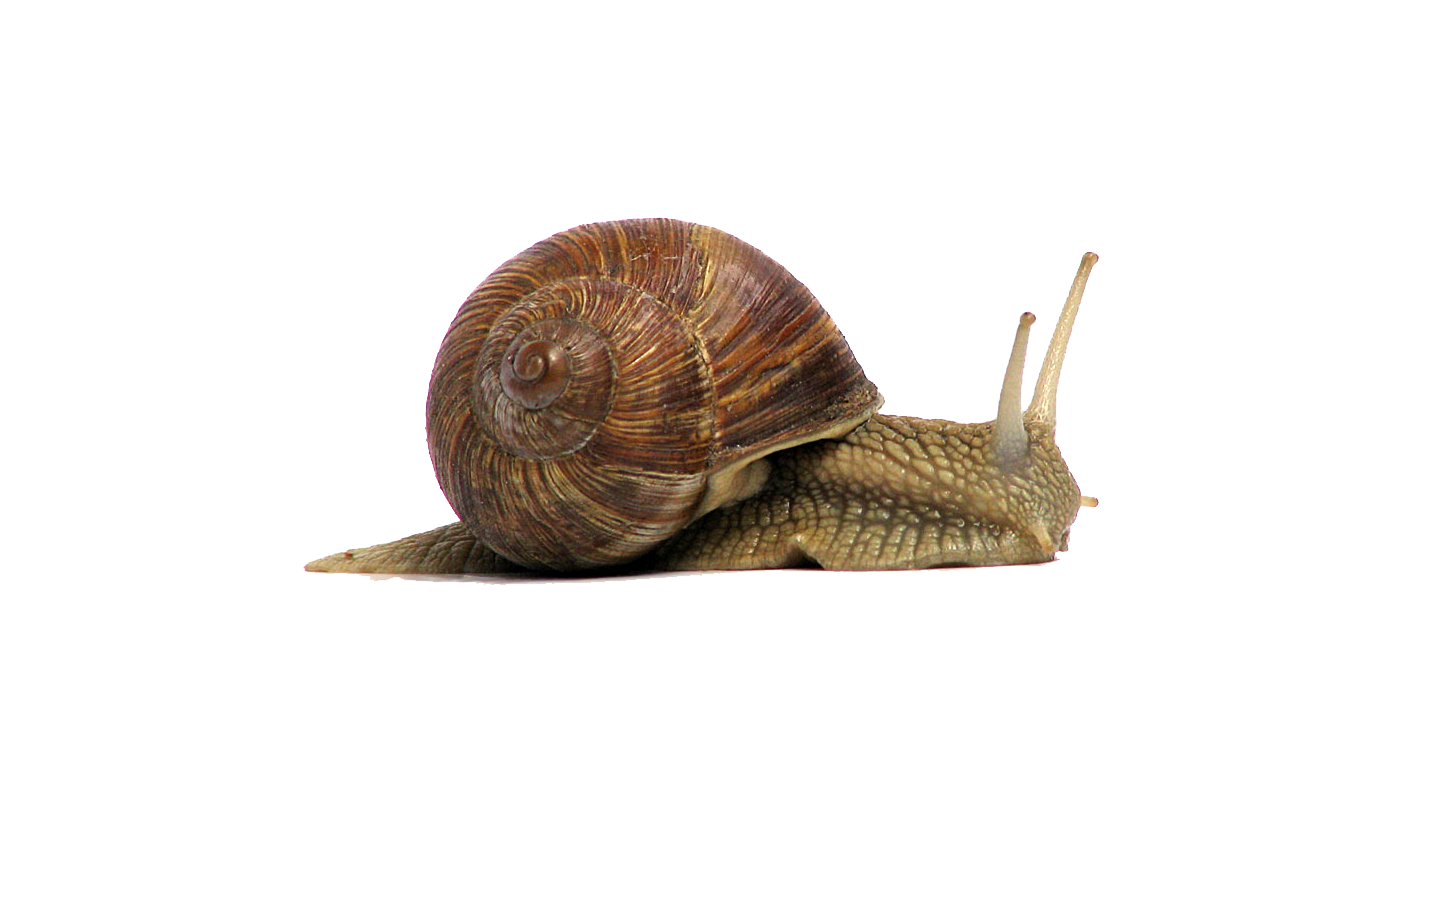 Snail Png File PNG Image